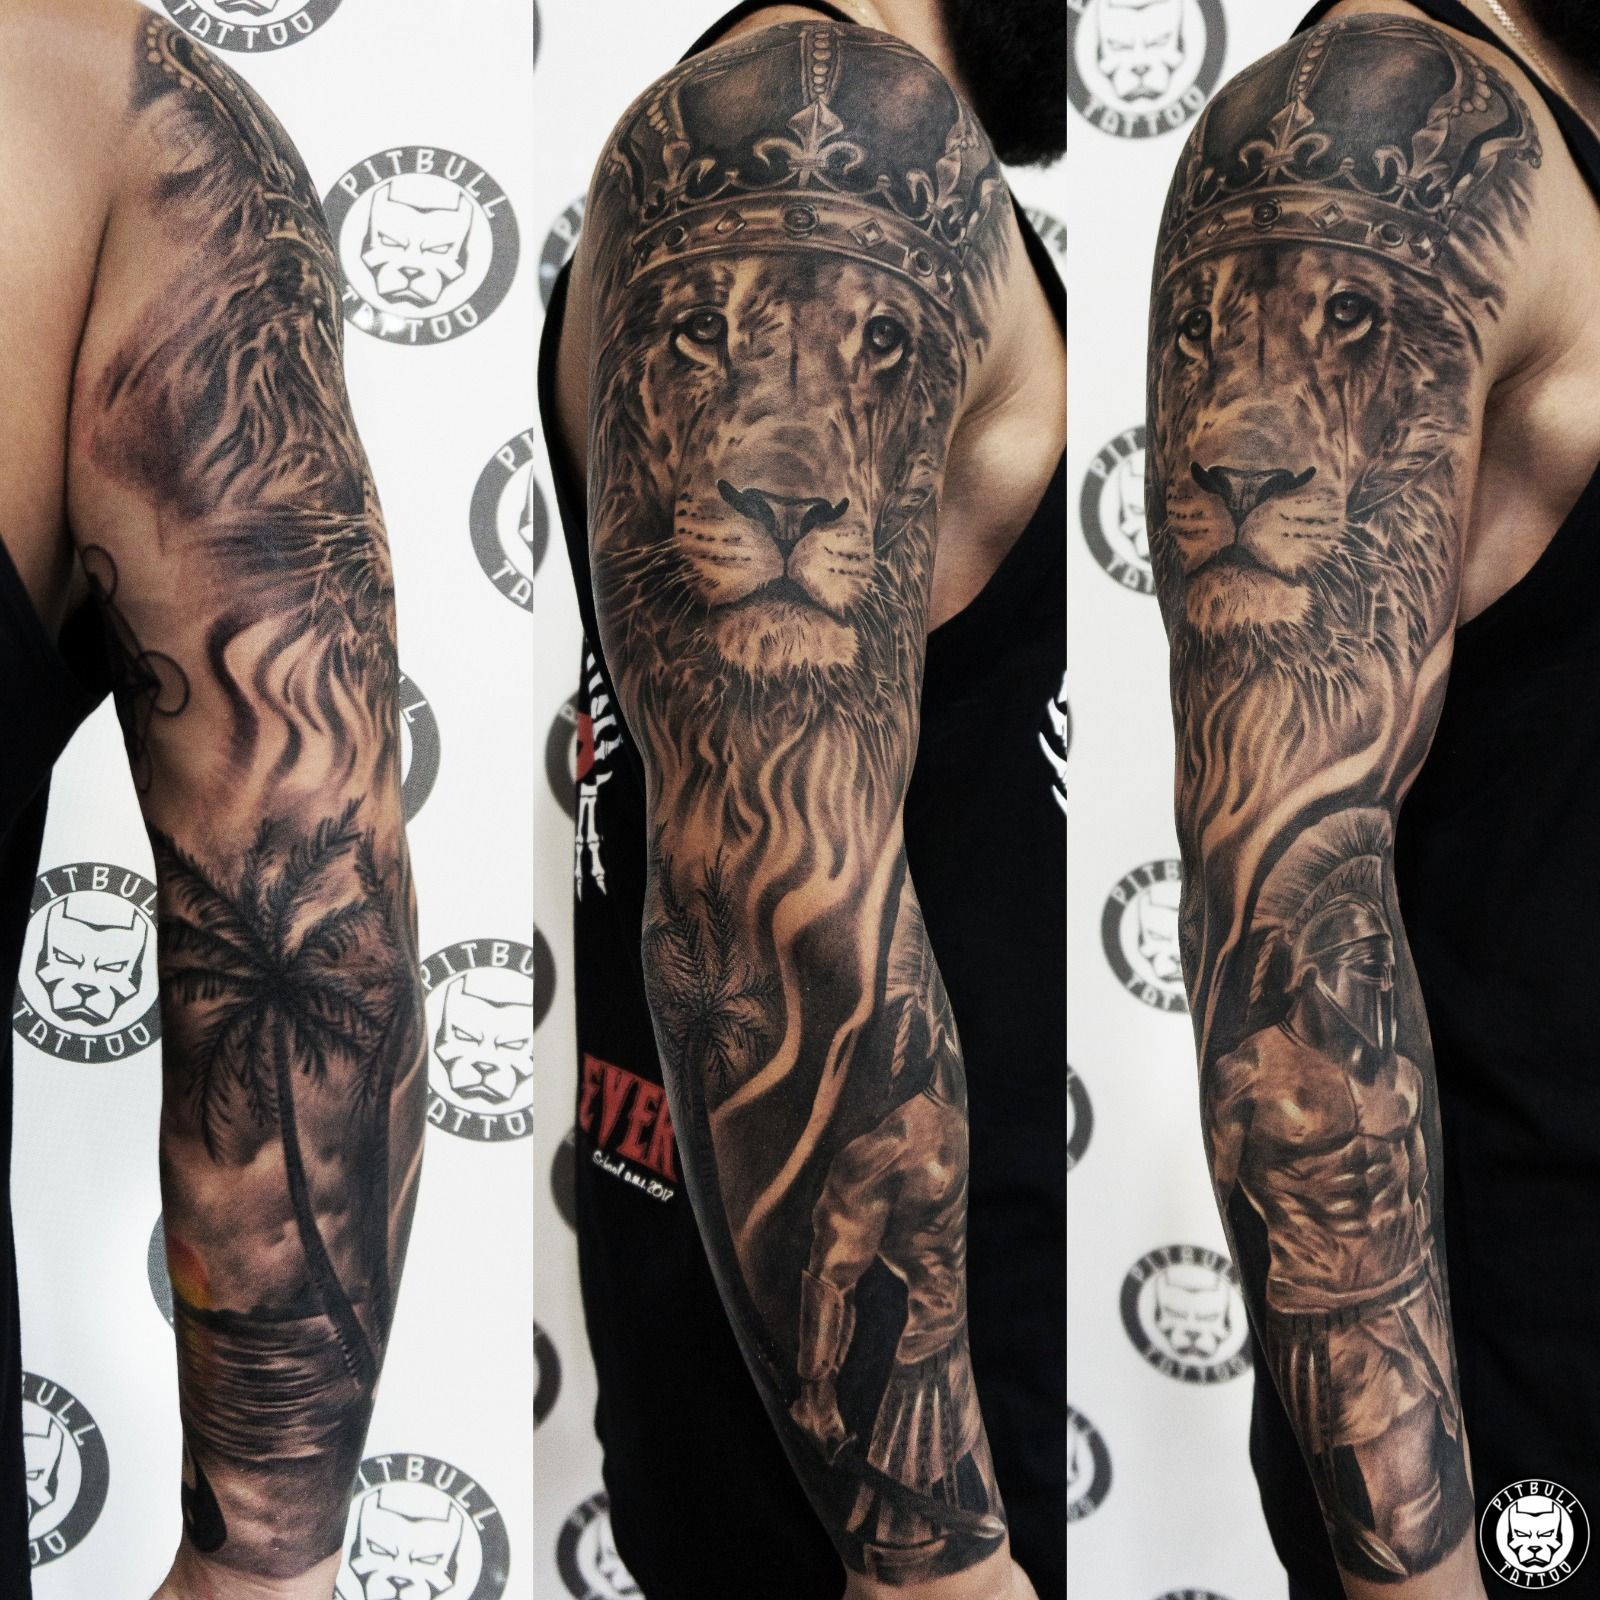 Realistic Full Sleeve Black Grey Style Check Our Website To See More Contact Us Www Pitbulltattoothai Tattoo Sleeve Designs Tattoos For Guys Elbow Tattoos